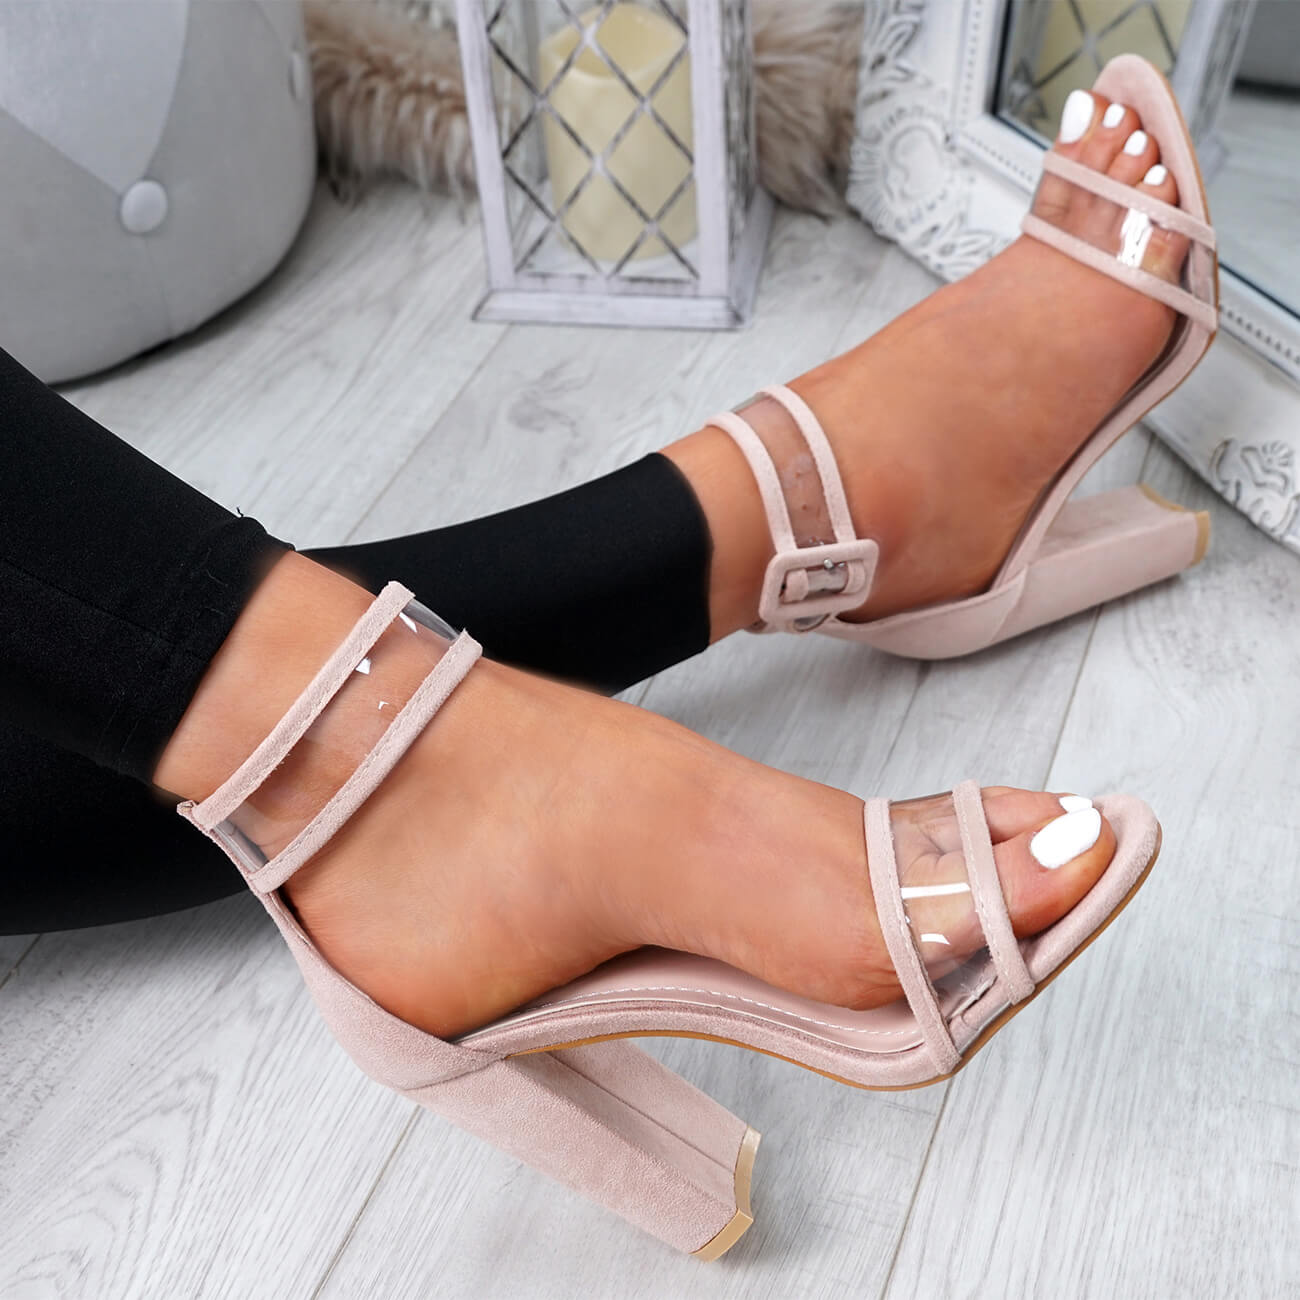 WOMENS-LADIES-ANKLE-STRAP-HIGH-HEEL-SANDALS-PEEP-TOE-CLEAR-FASHION-SHOES-SIZE thumbnail 7